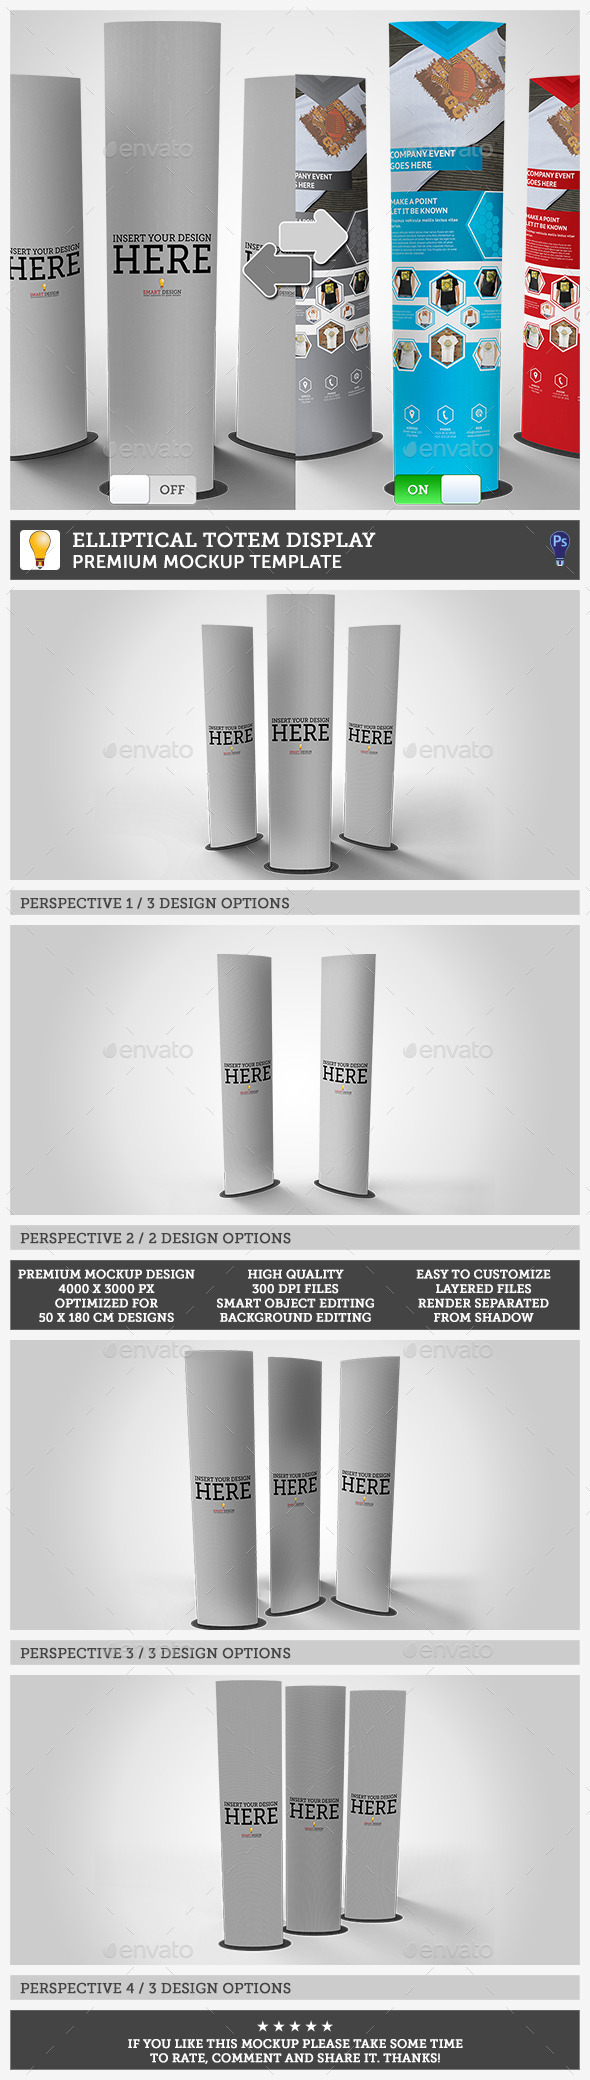 GraphicRiver Elliptical Totem Display Mockup 11865510